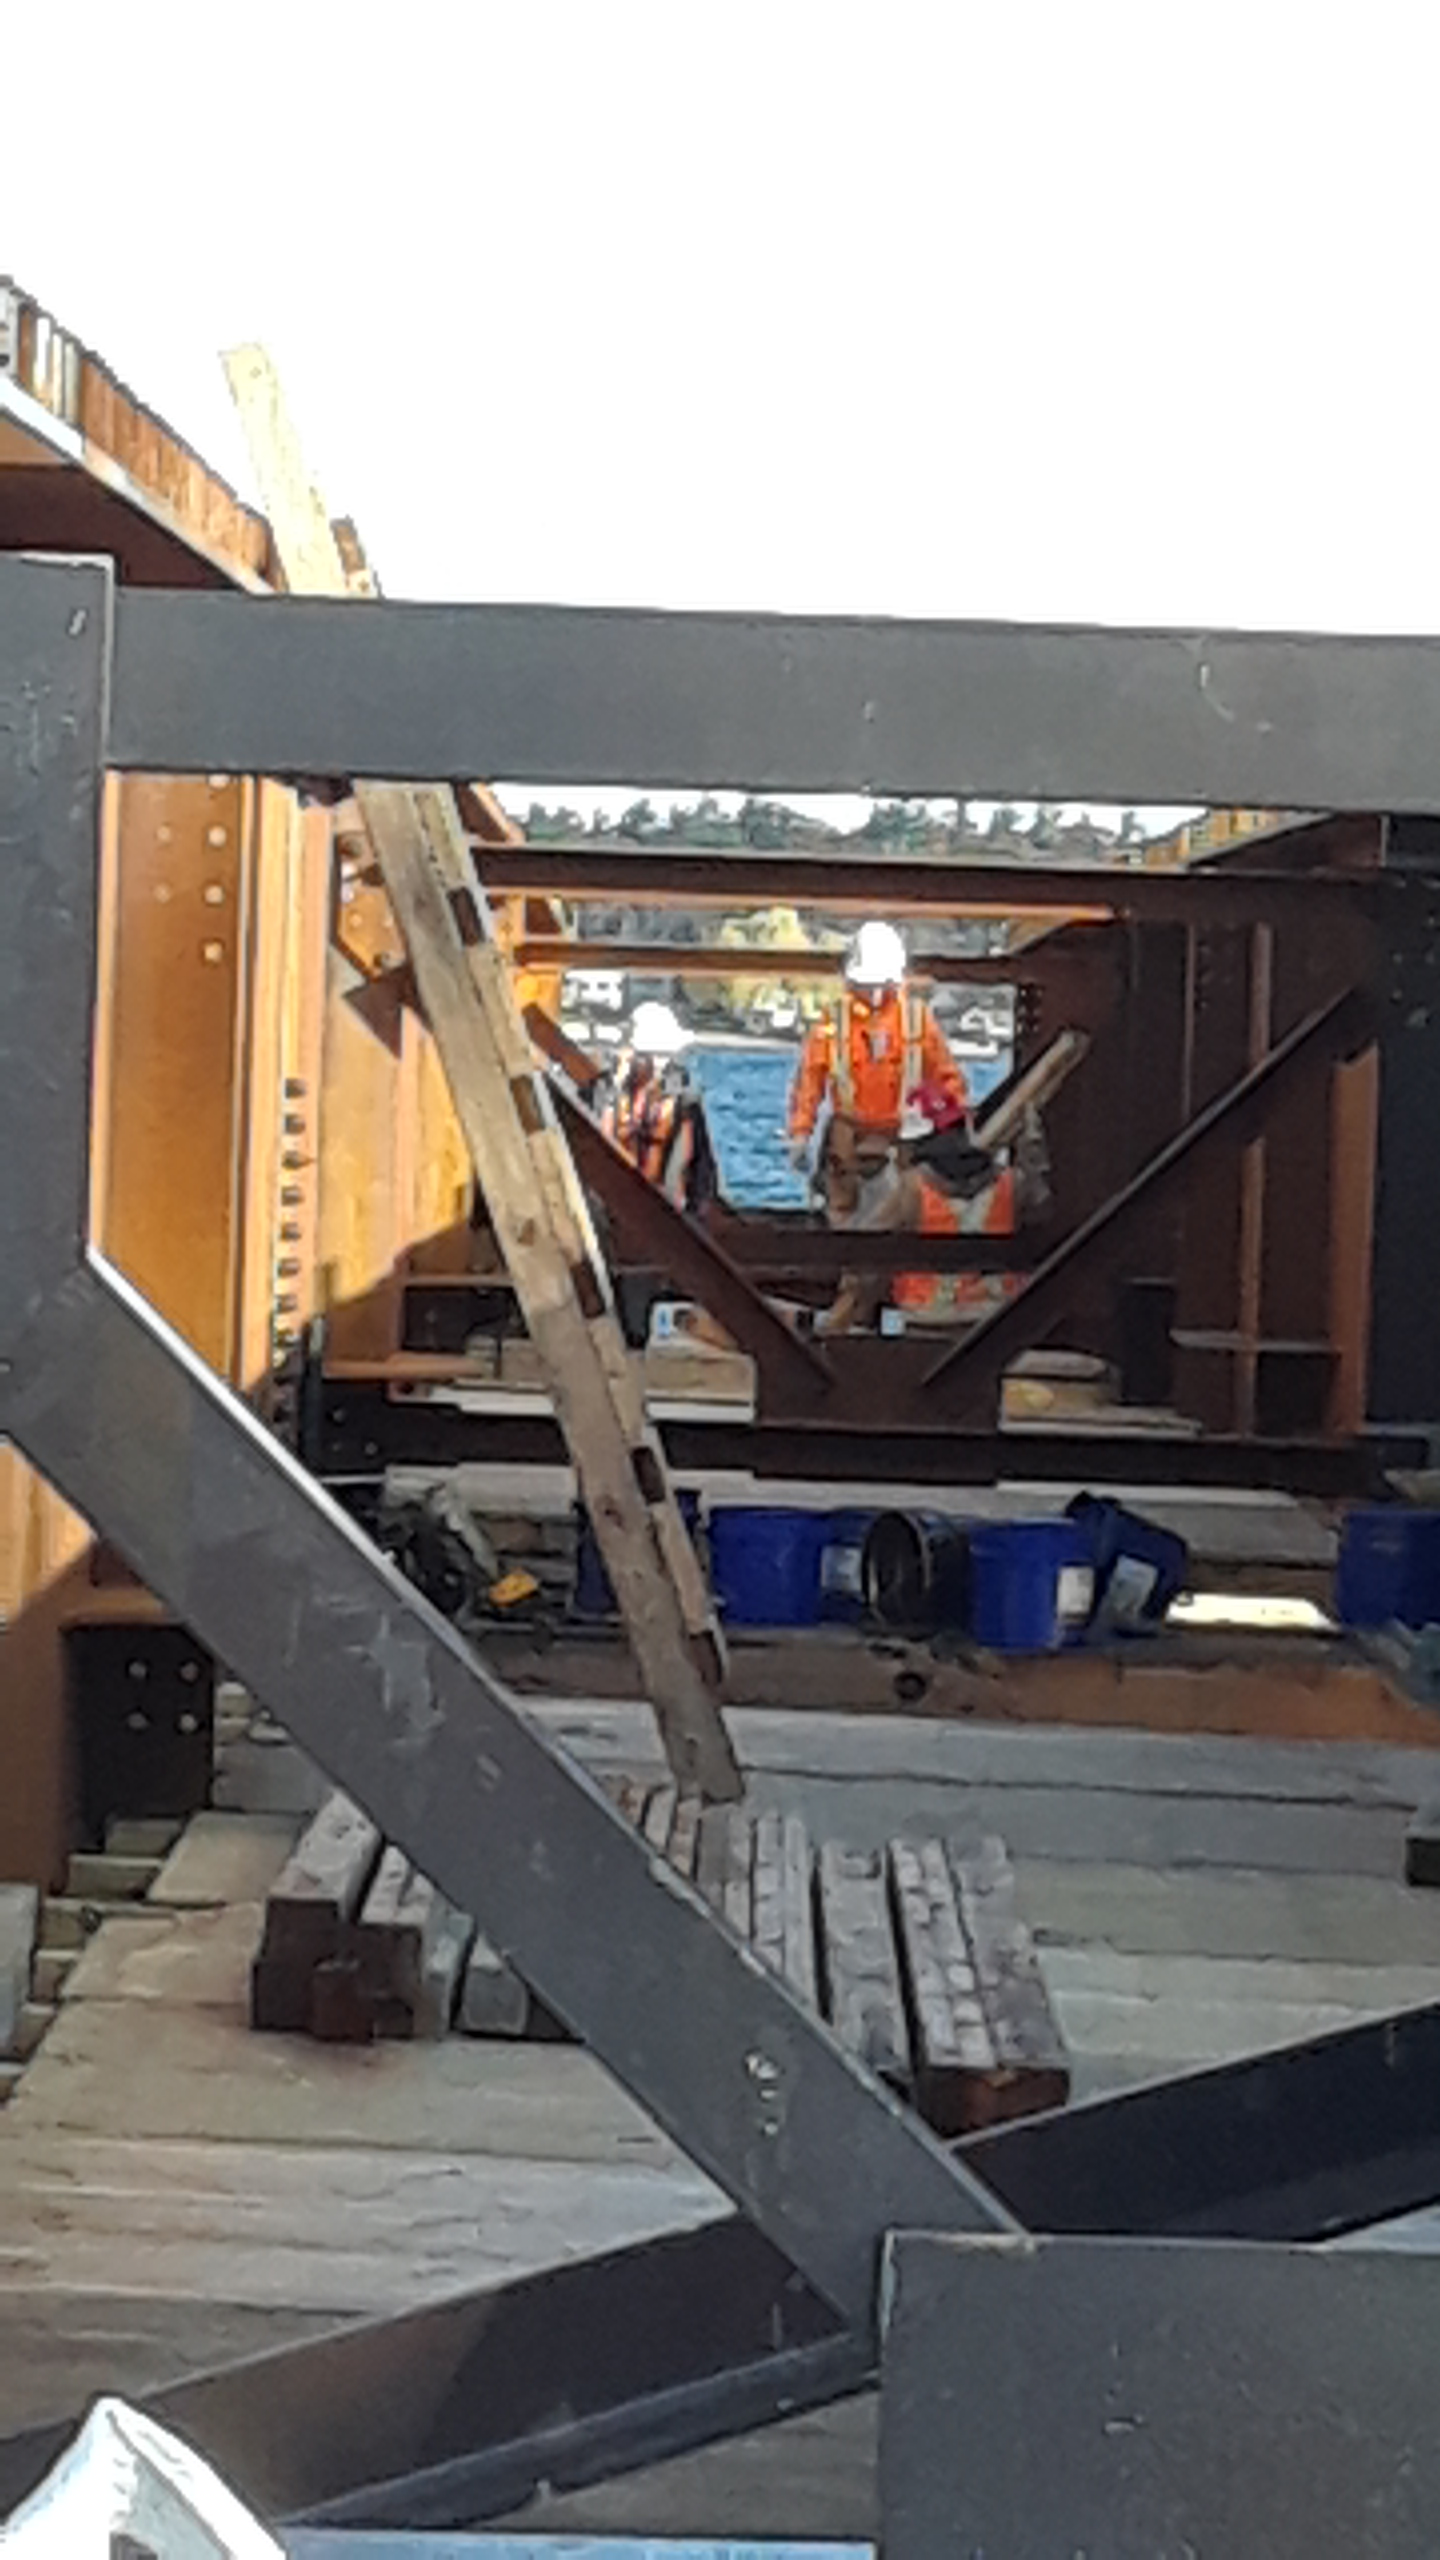 Installing the false decking in the second Approach girder